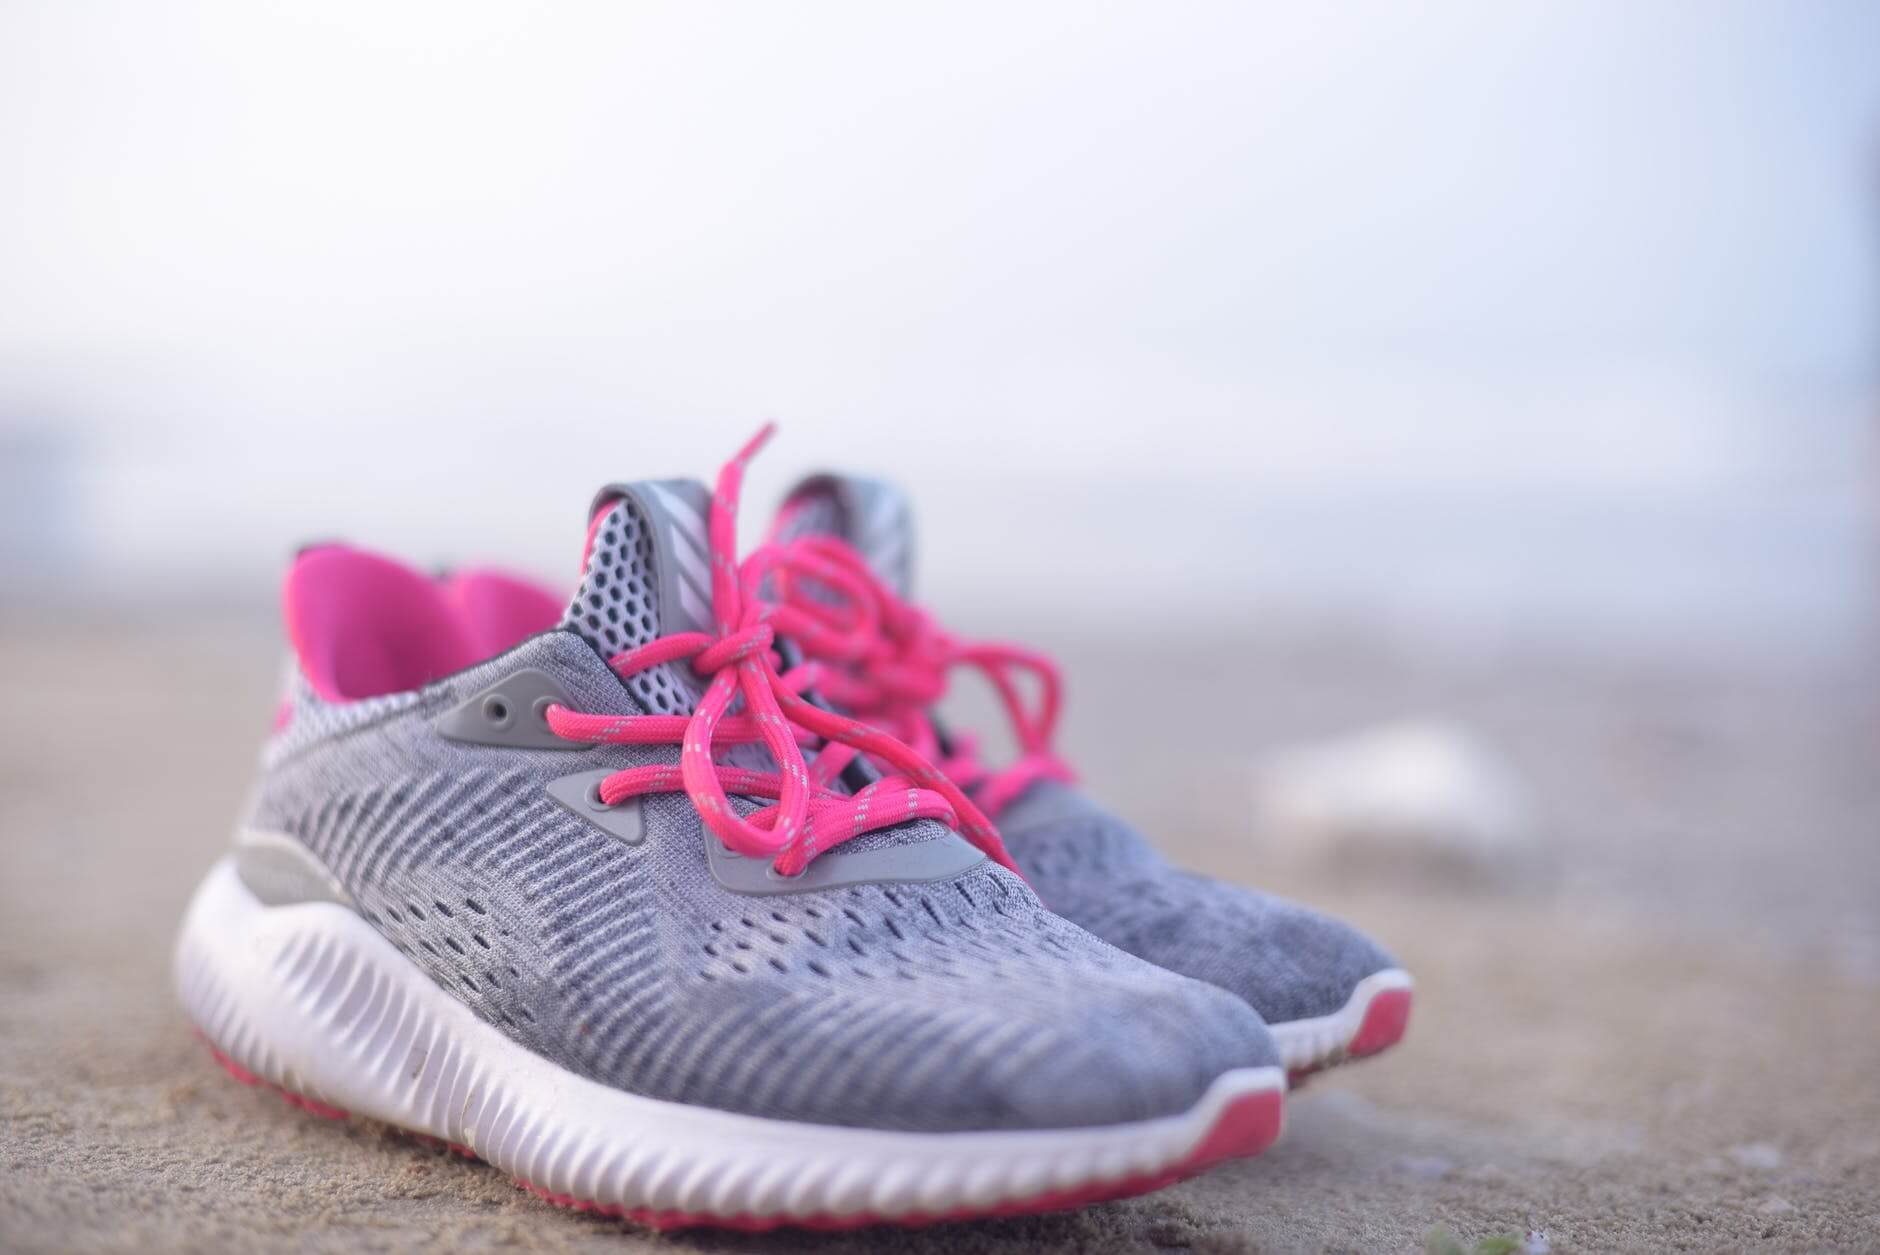 A pair of pink and grey tennis shoes worn during a workout